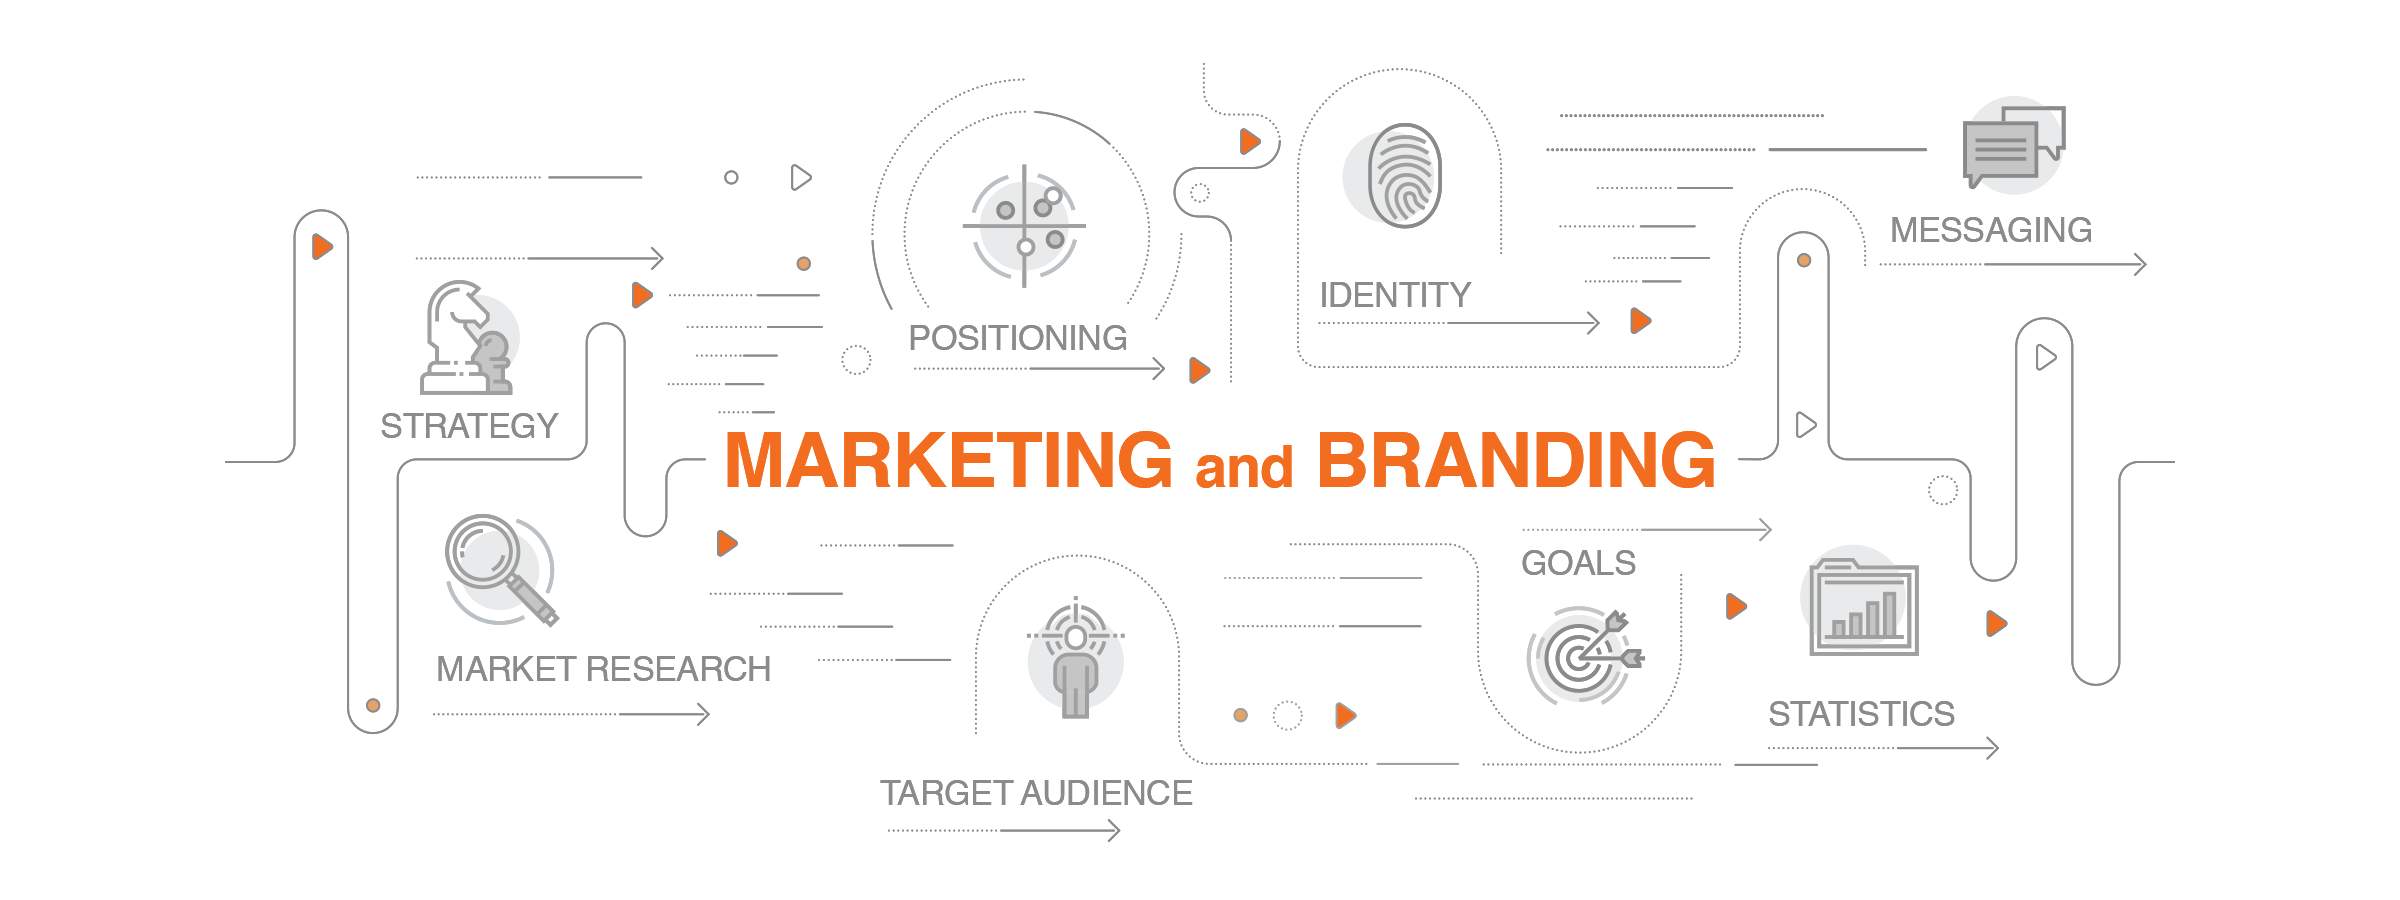 Marketing and Branding Infographic